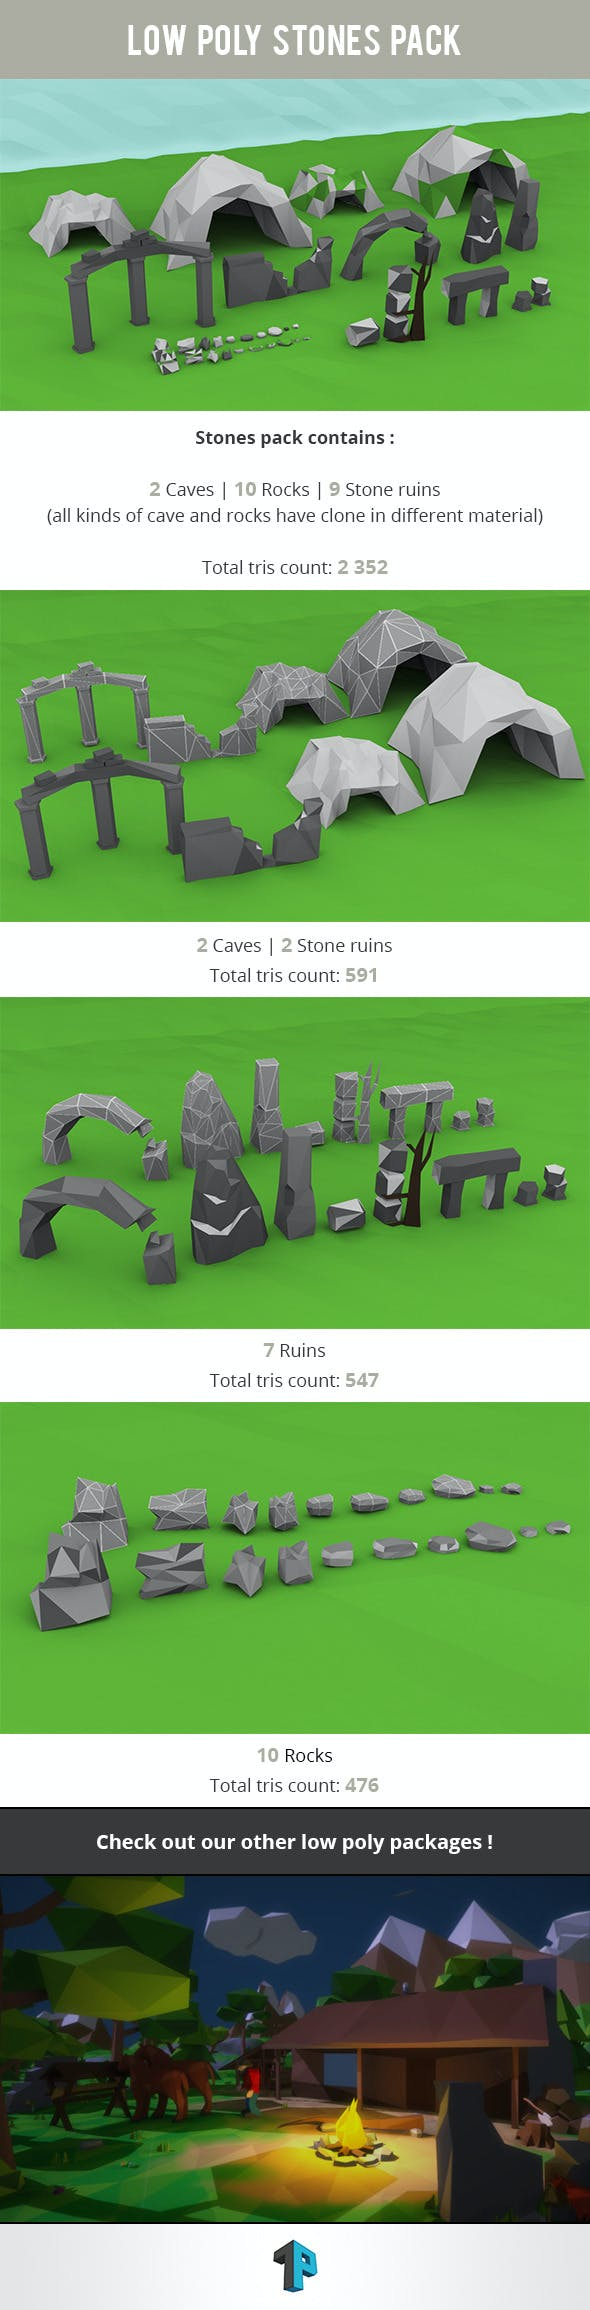 Low Poly Stones Package - 3DOcean Item for Sale